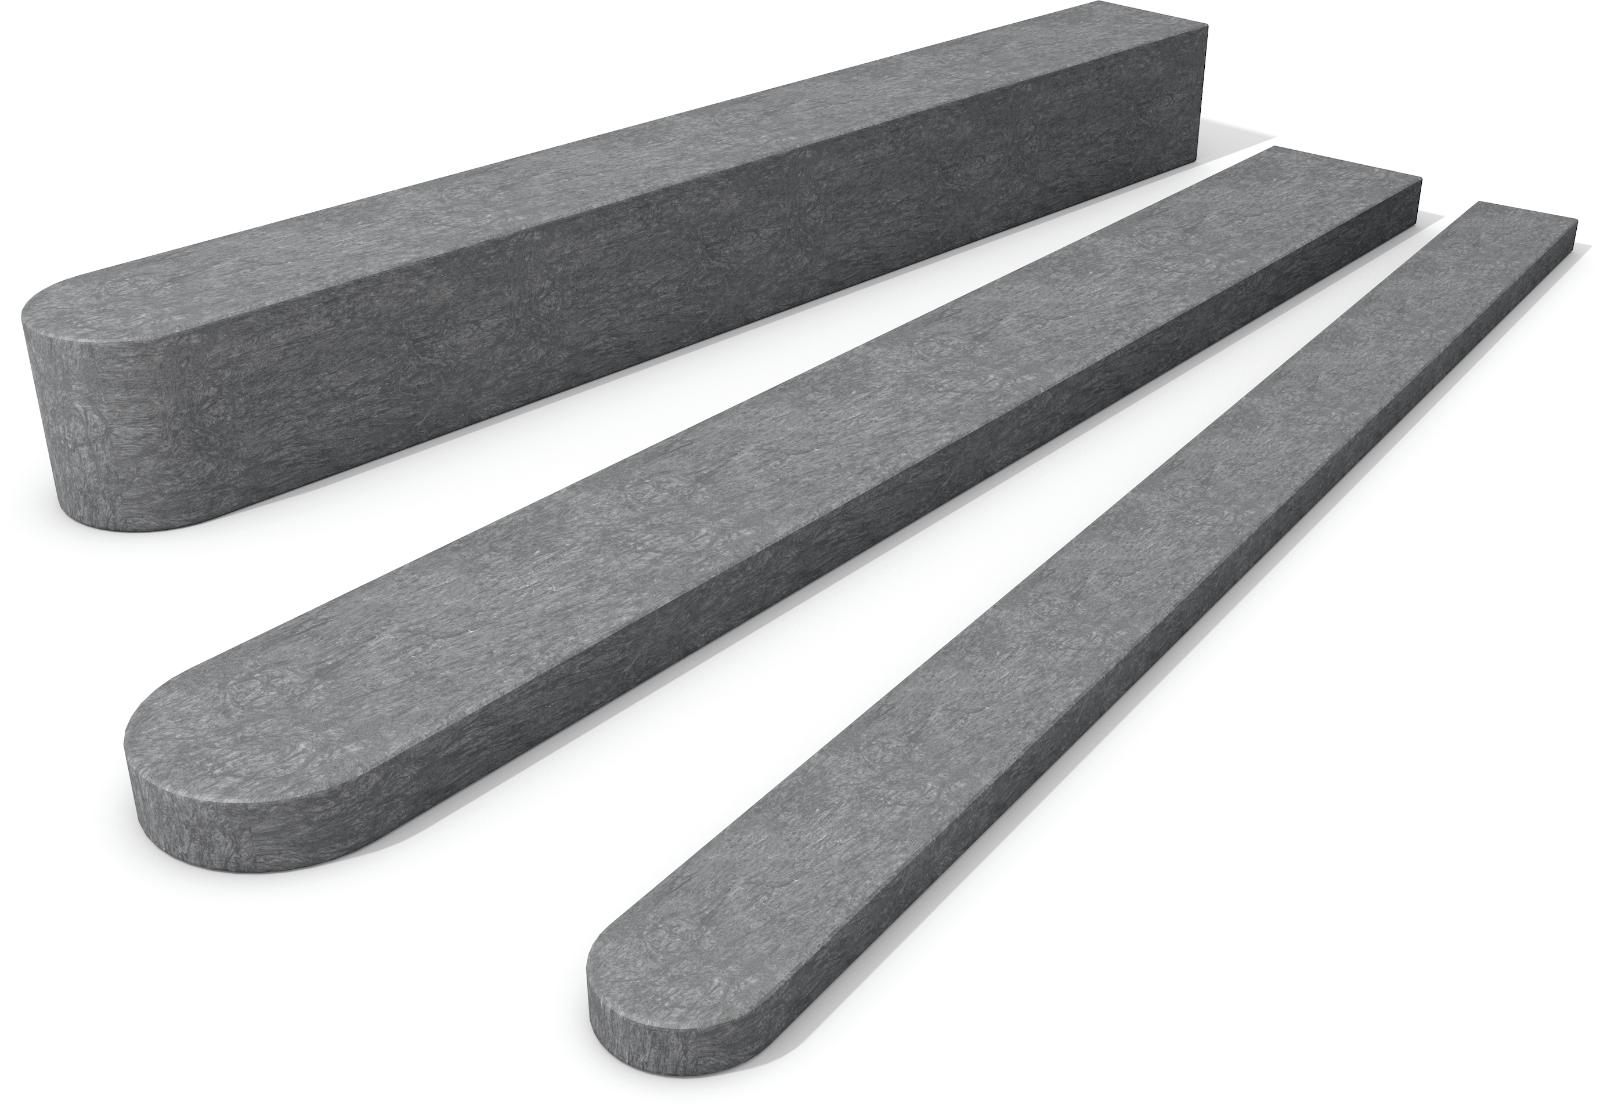 Fence Post with Round End Grey 90mm x 90mm x 1250mm